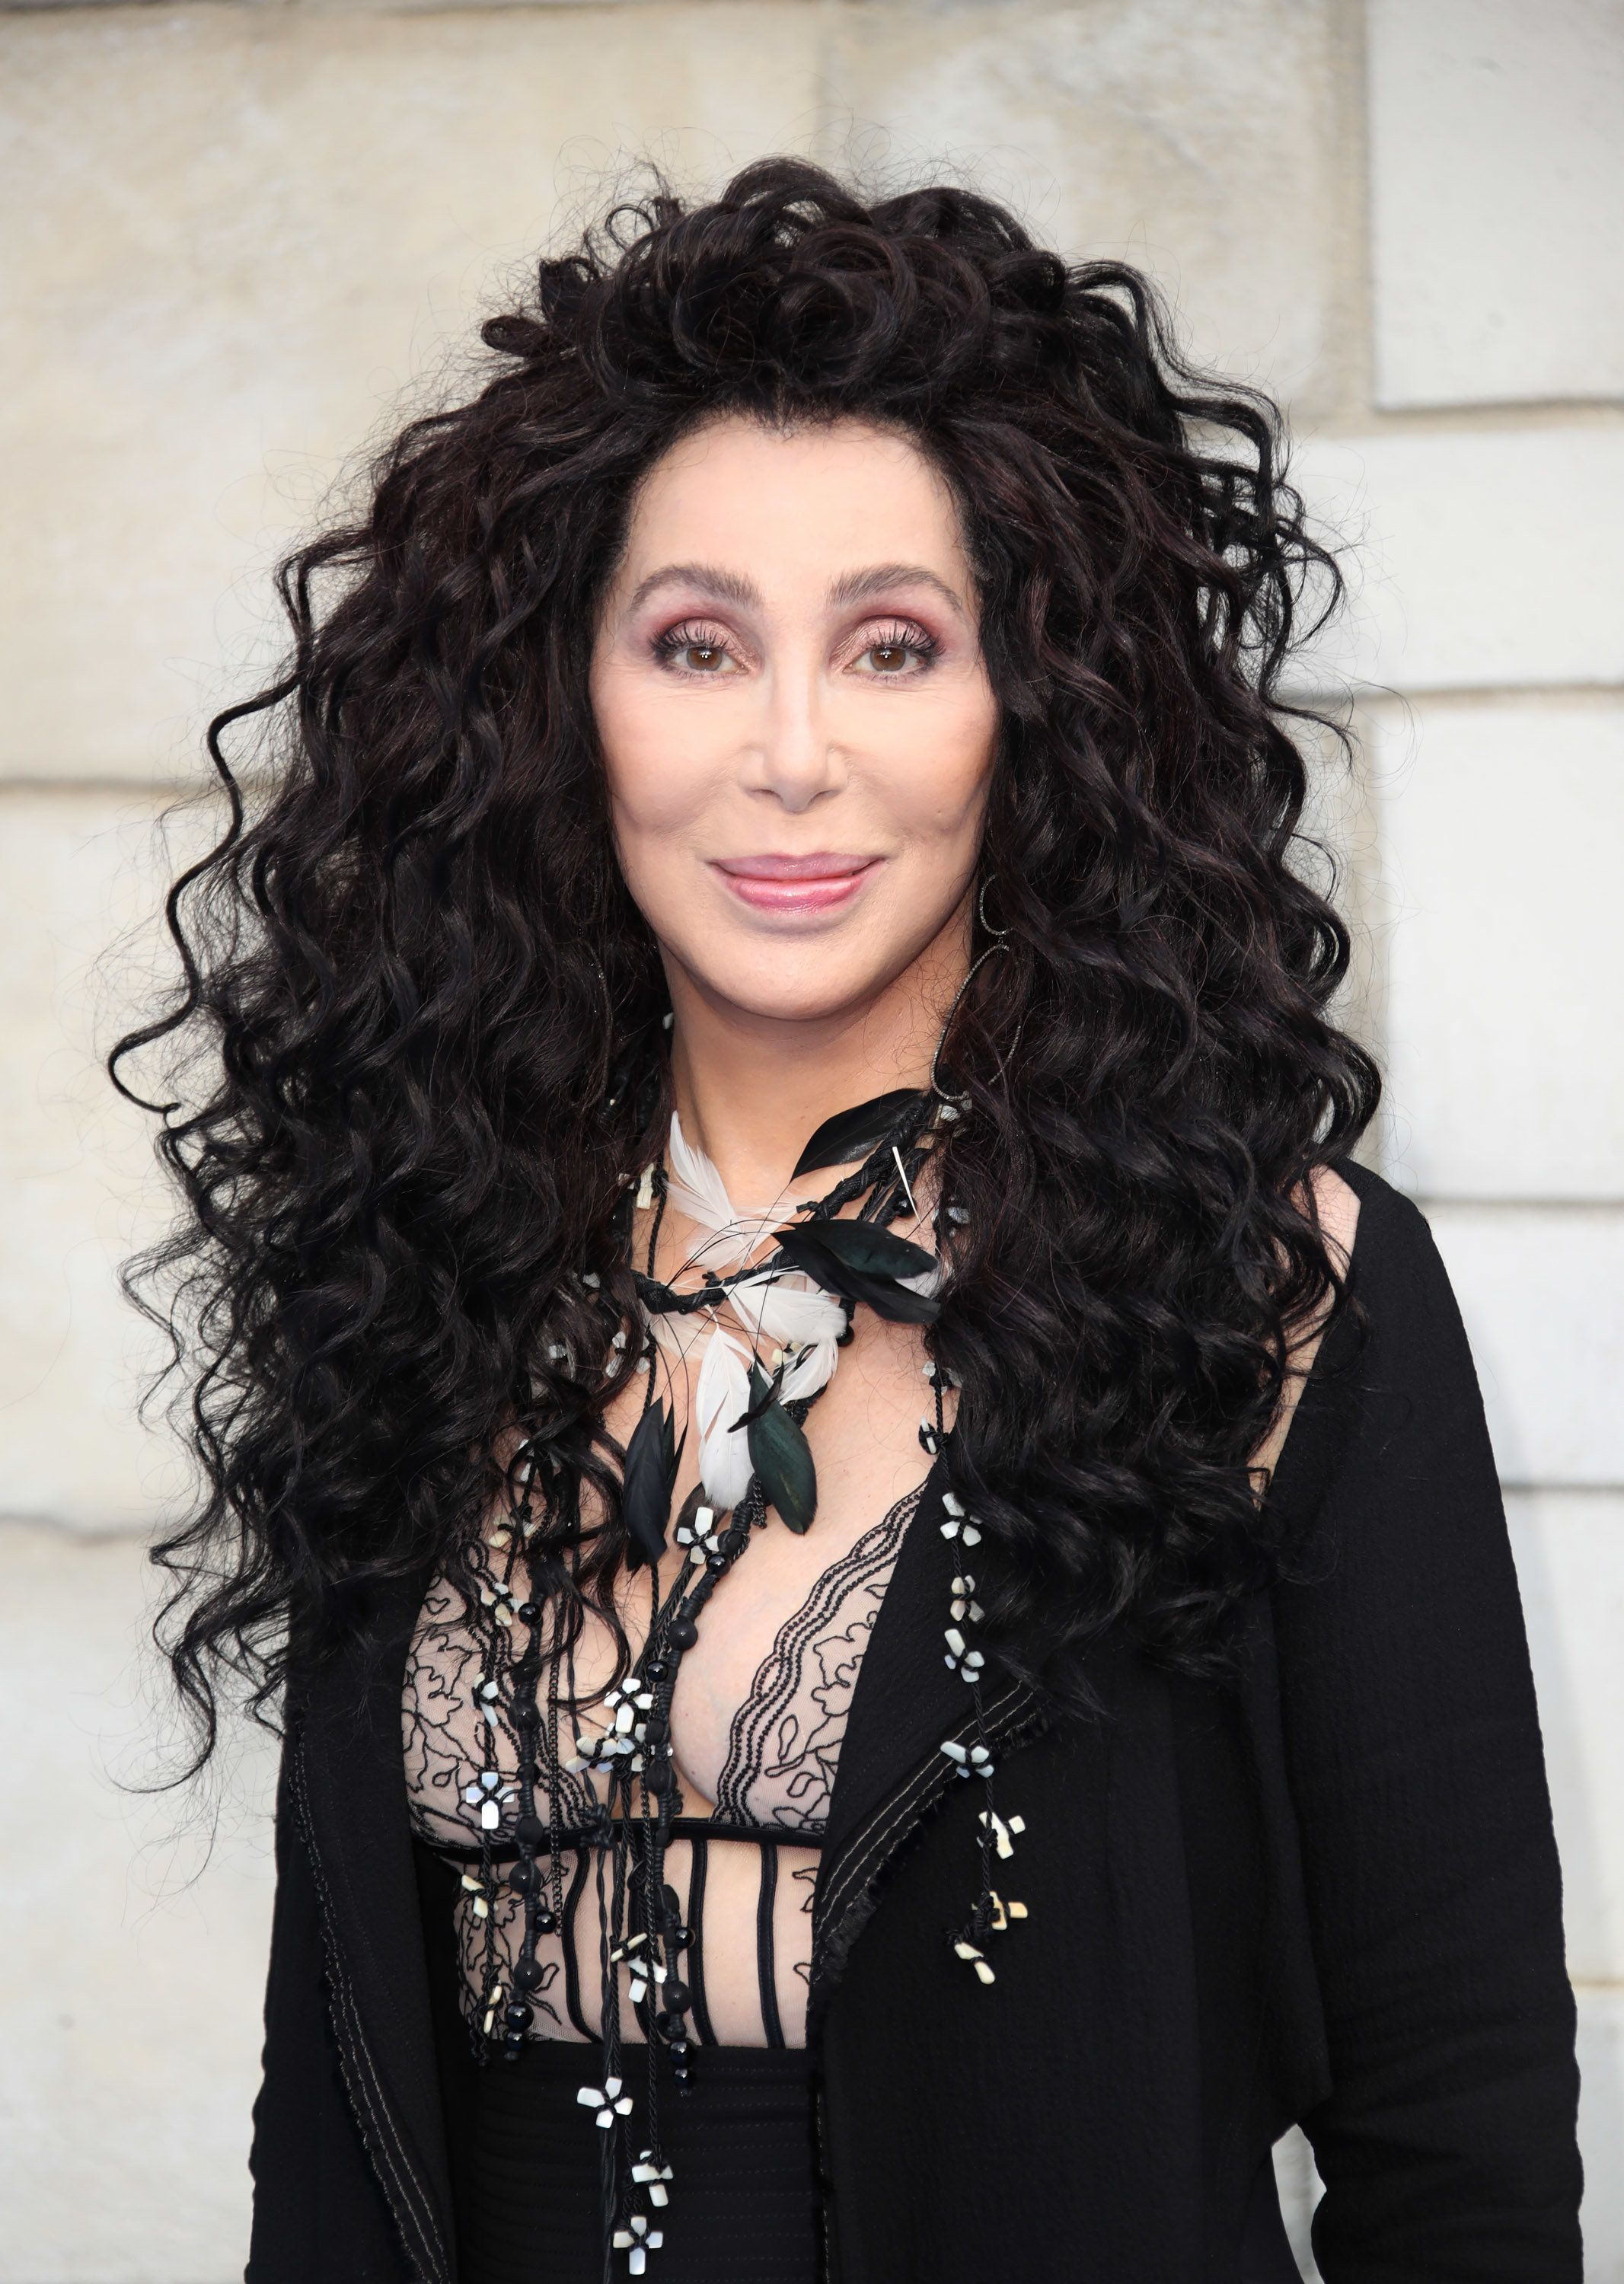 LONDON, ENGLAND - JULY 16:  Cher attends the UK Premiere of 'Mamma Mia! Here We Go Again' at Eventim Apollo on July 16, 2018 in London, England.  (Photo by Mike Marsland/Mike Marsland/WireImage)